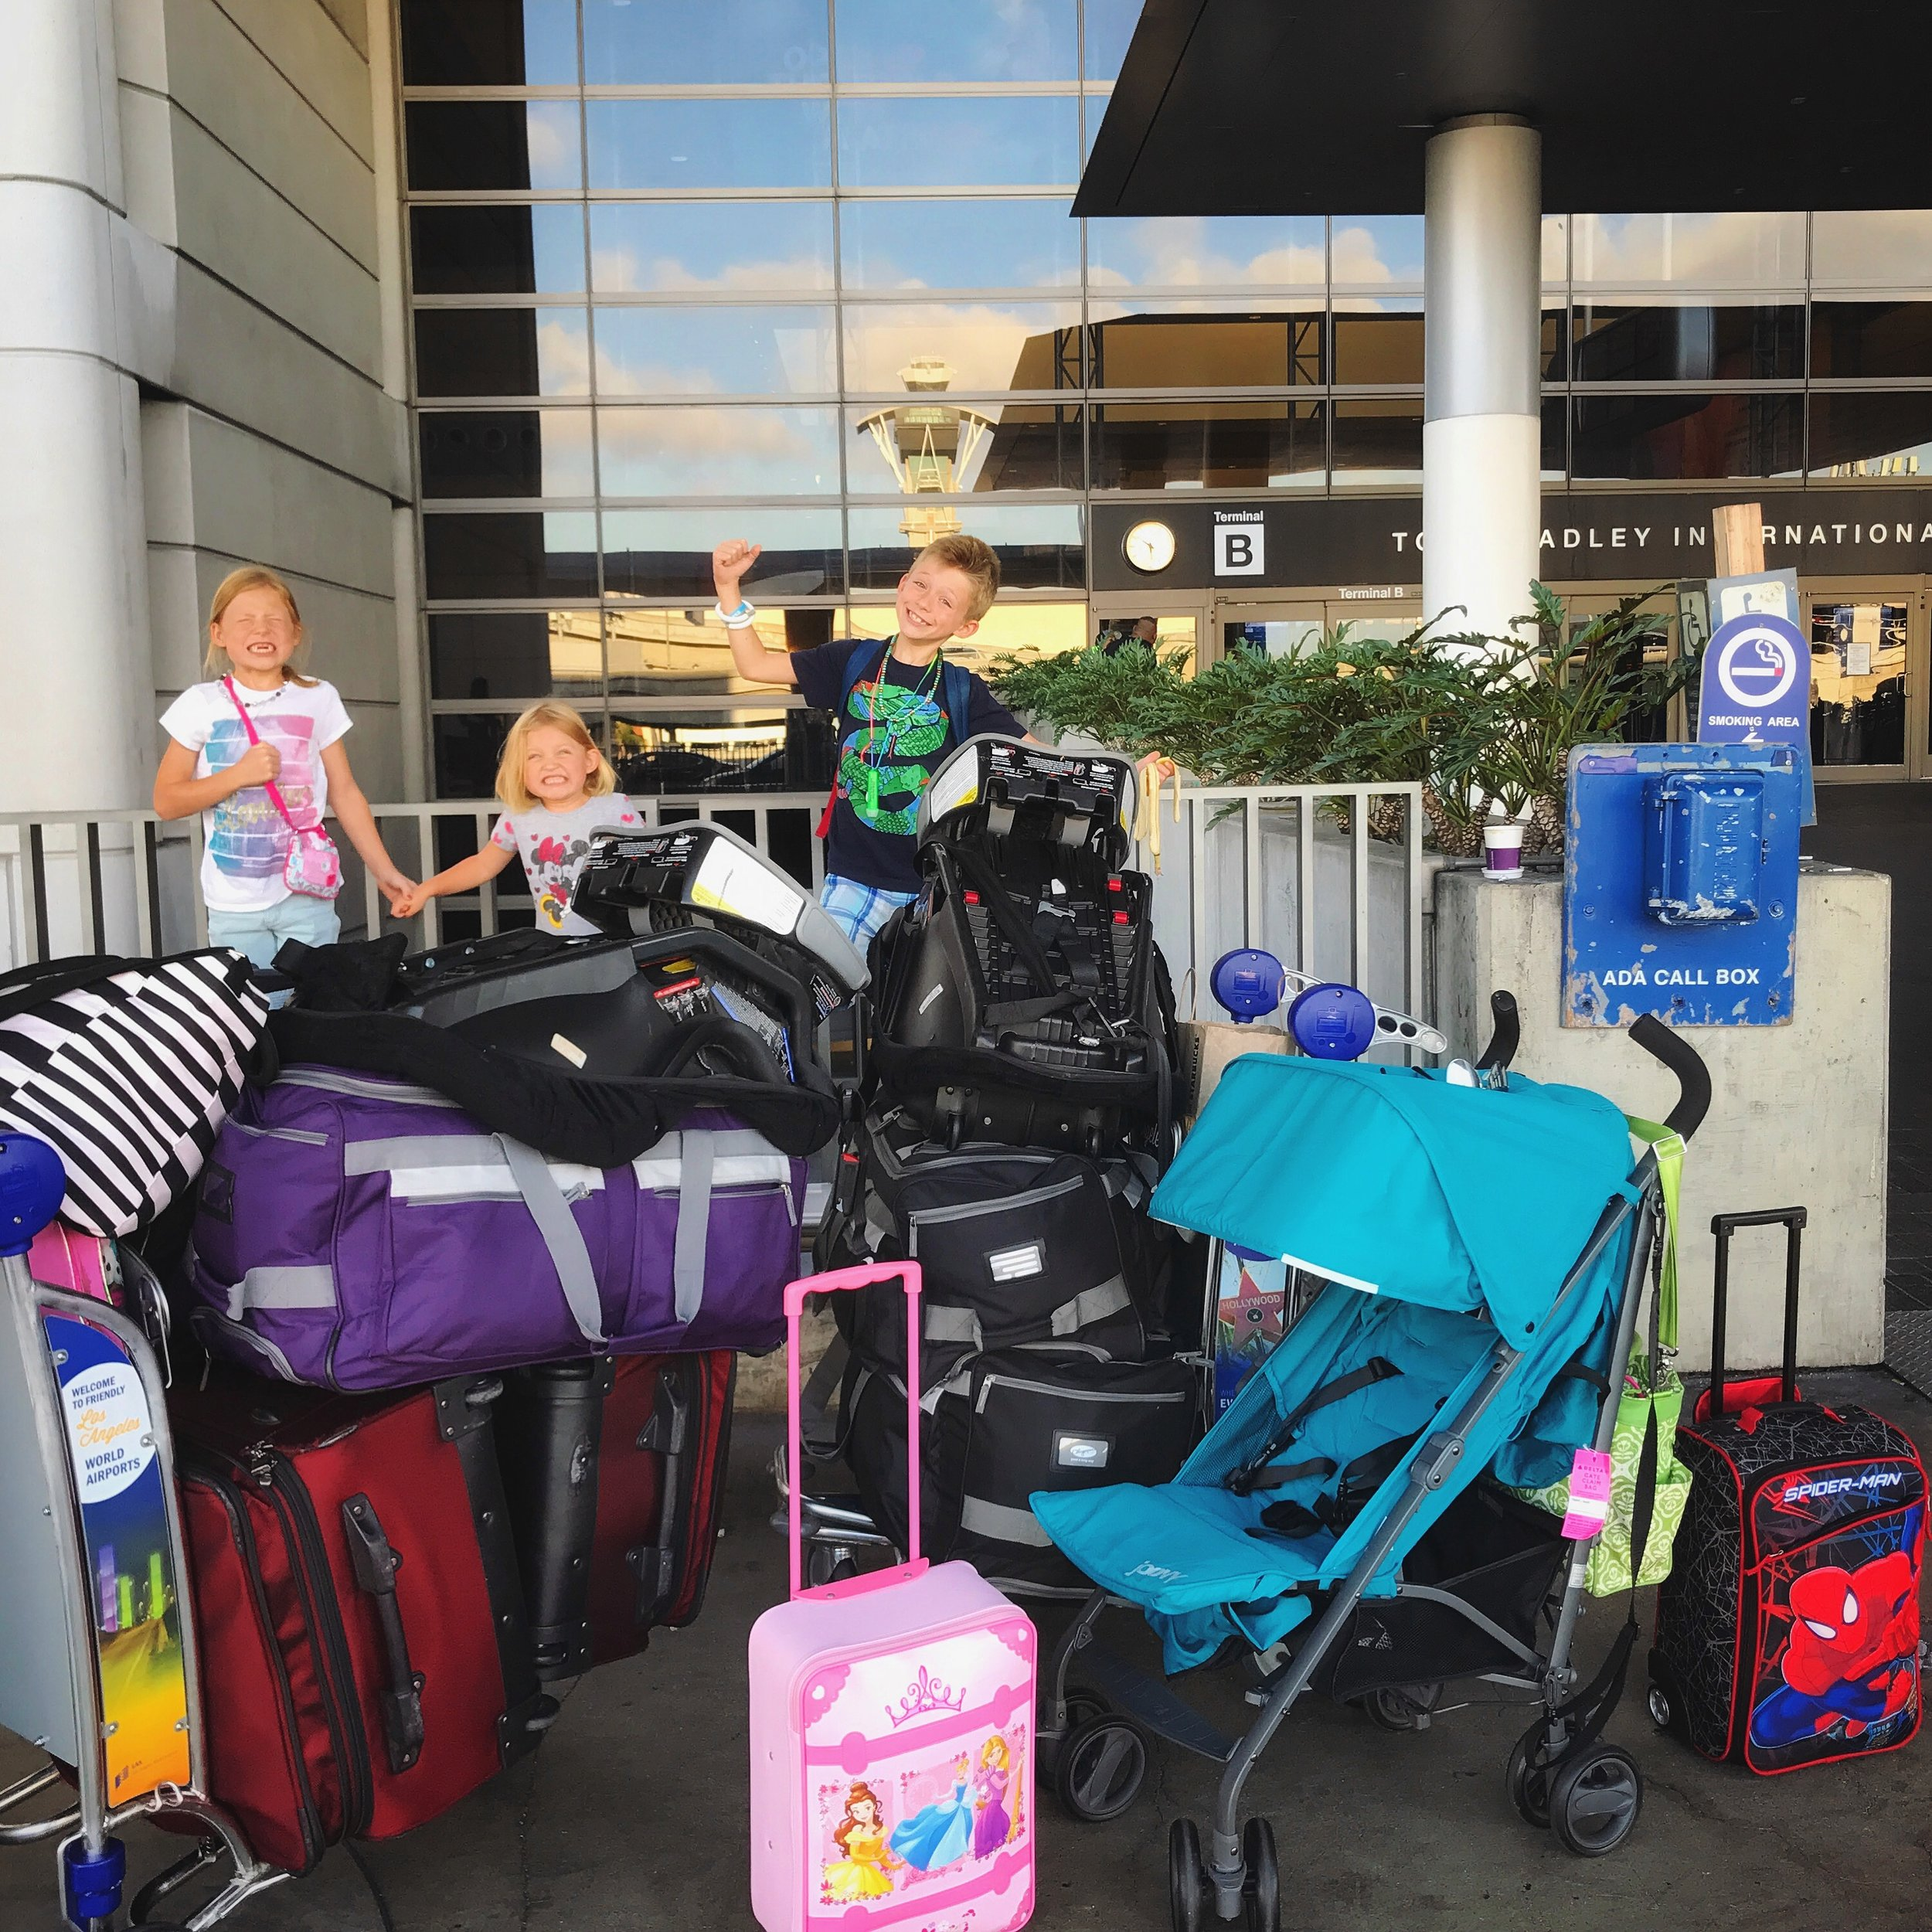 Our minimalist life for a family or six consolidated to this. Everything we would carry with us through two airports, packed into one rental car, and hauled up a combined 16 flights of stairs.